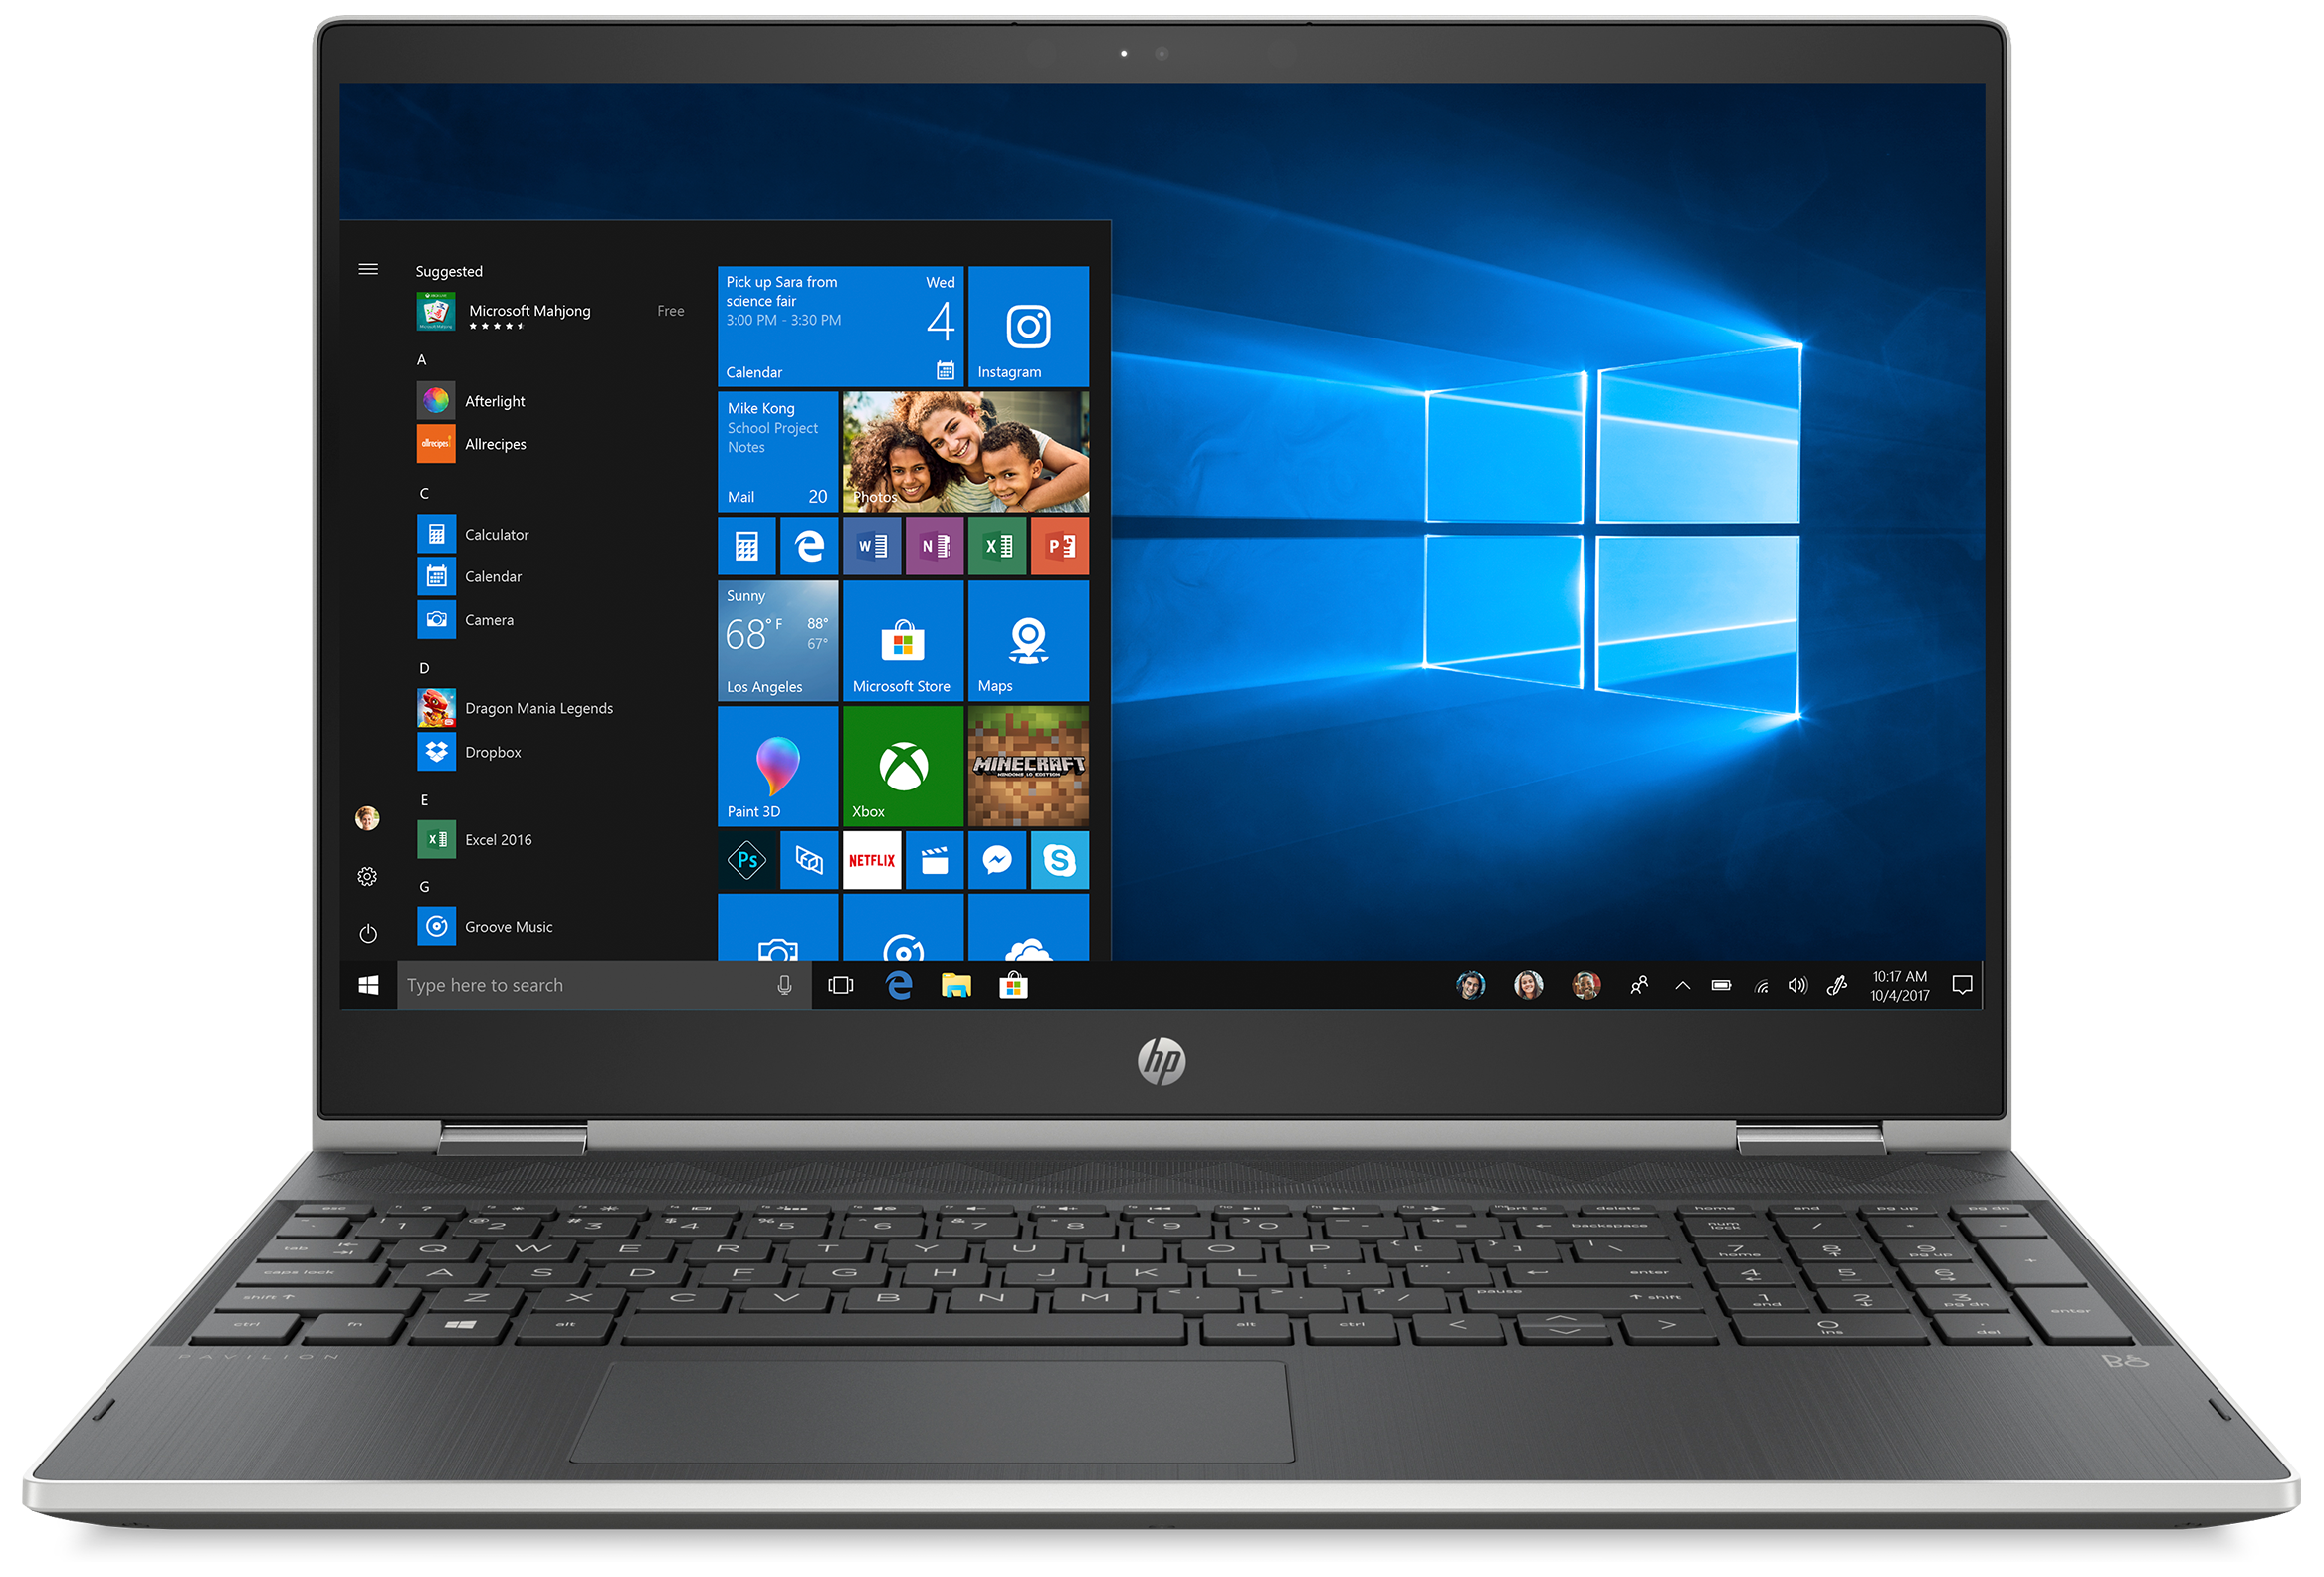 Front view of the HP Pavilion x360